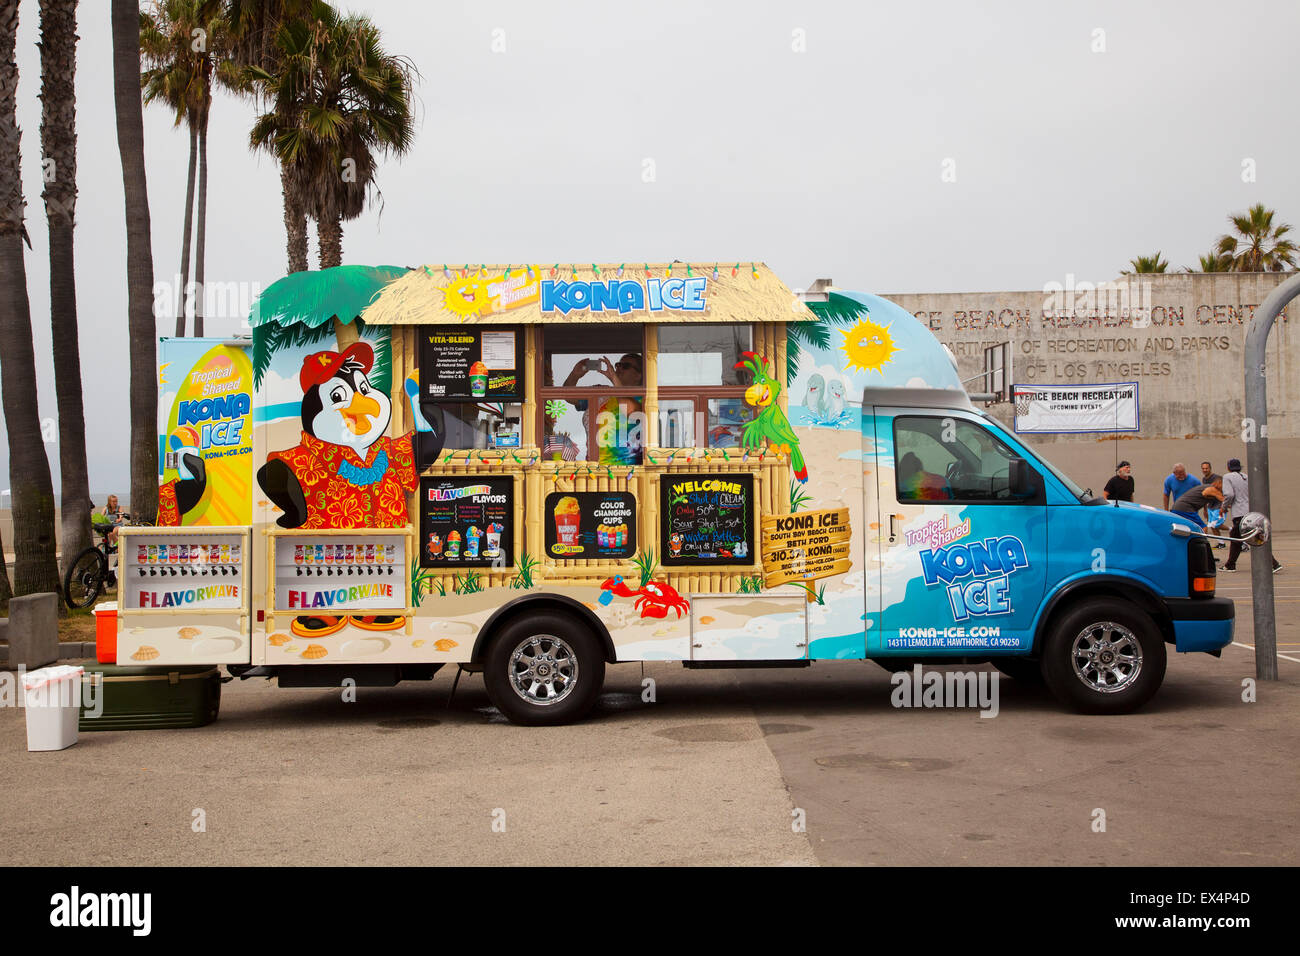 Food Truck Selling Ices Venice Beach California